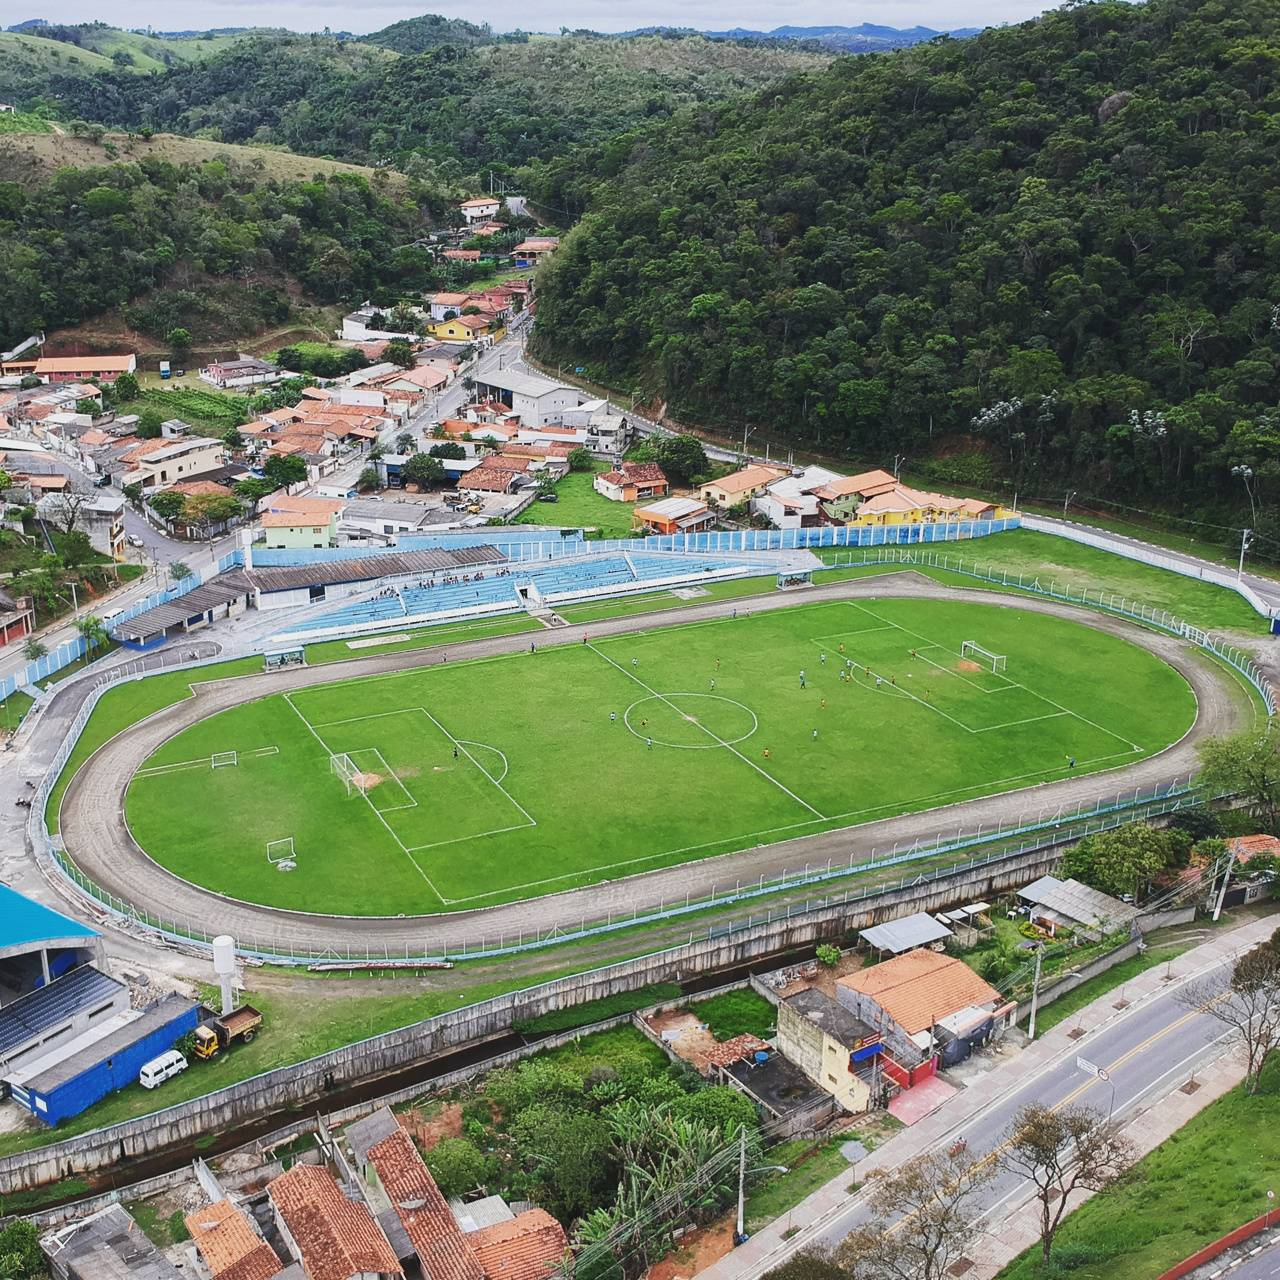 Campo do guararema